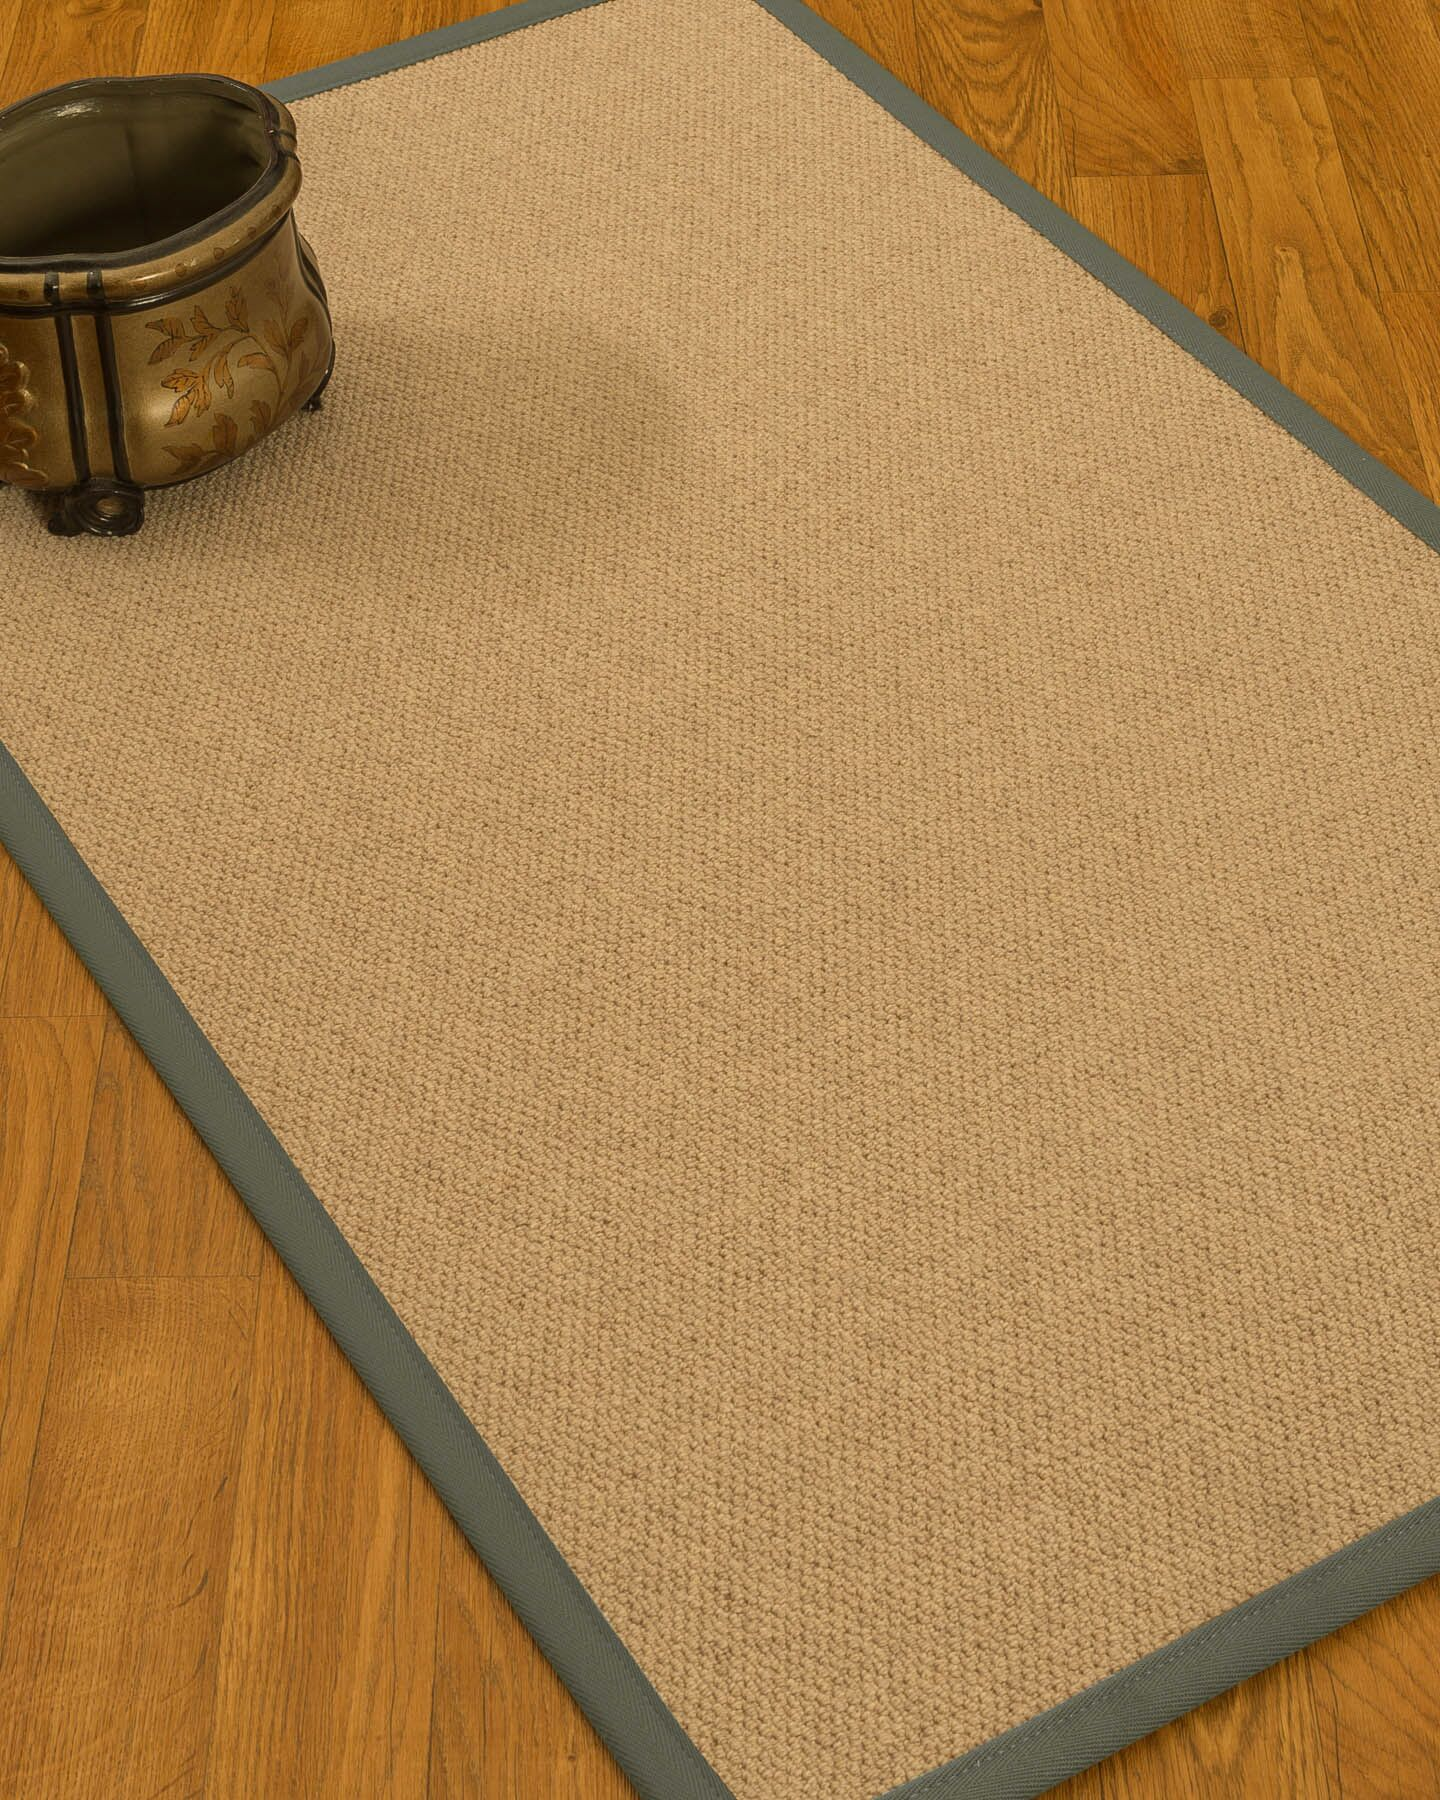 Chavira Border Hand-Woven Wool Beige/Stone Area Rug Rug Pad Included: No, Rug Size: Runner 2'6